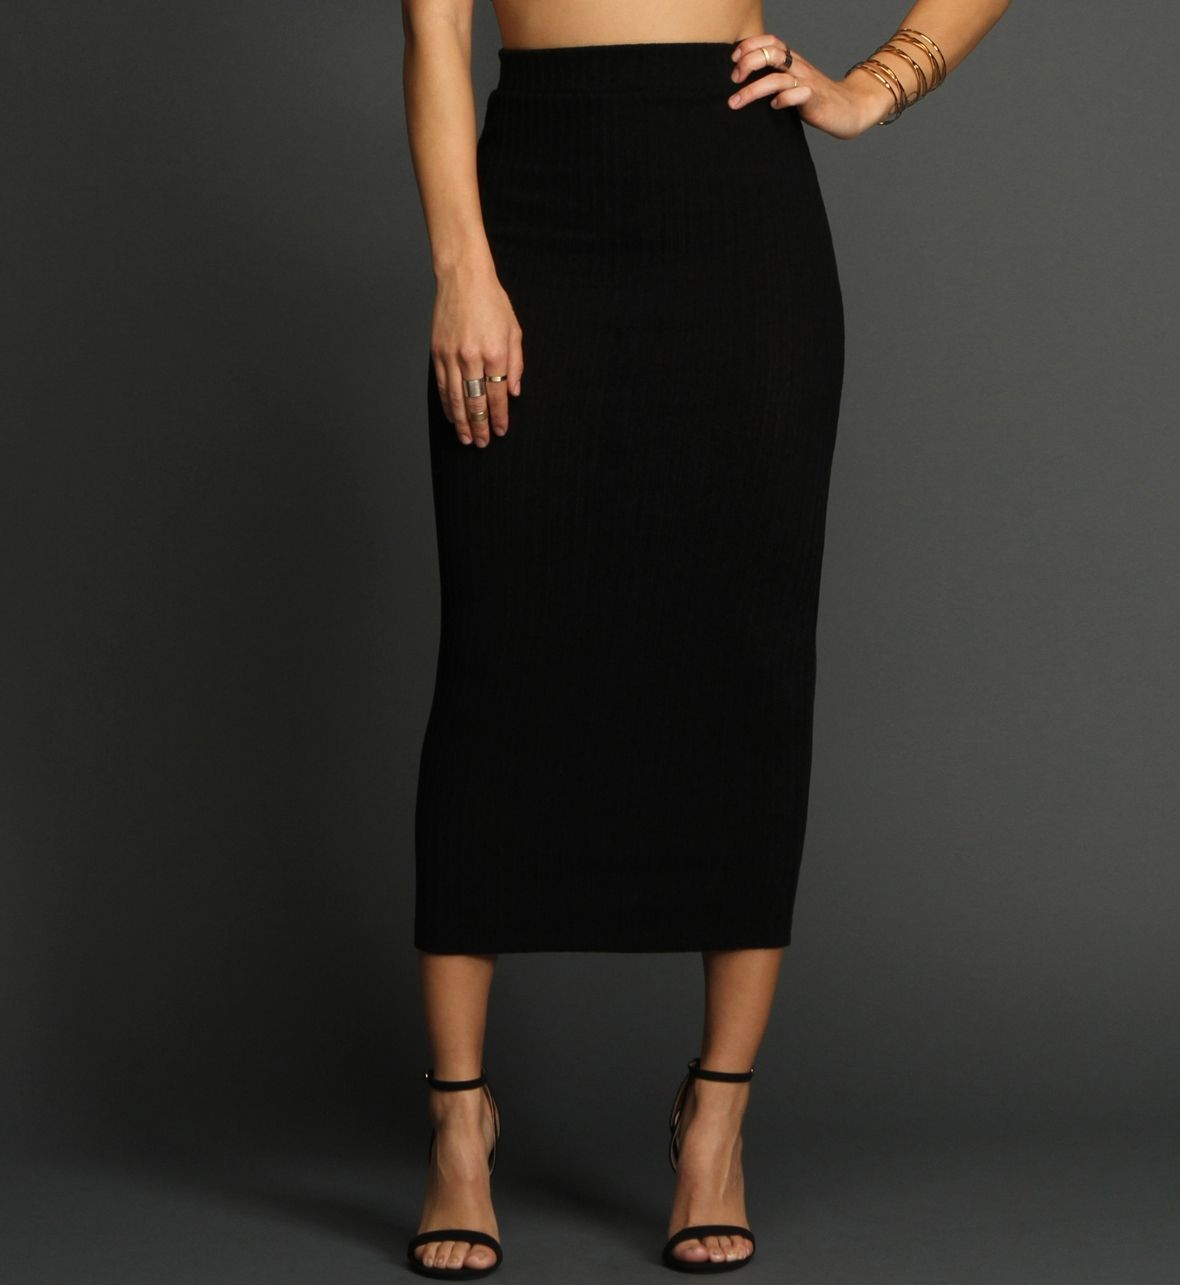 BLACK MIDI SKIRT PENCIL SKIRT | Style | Pinterest | Products ...